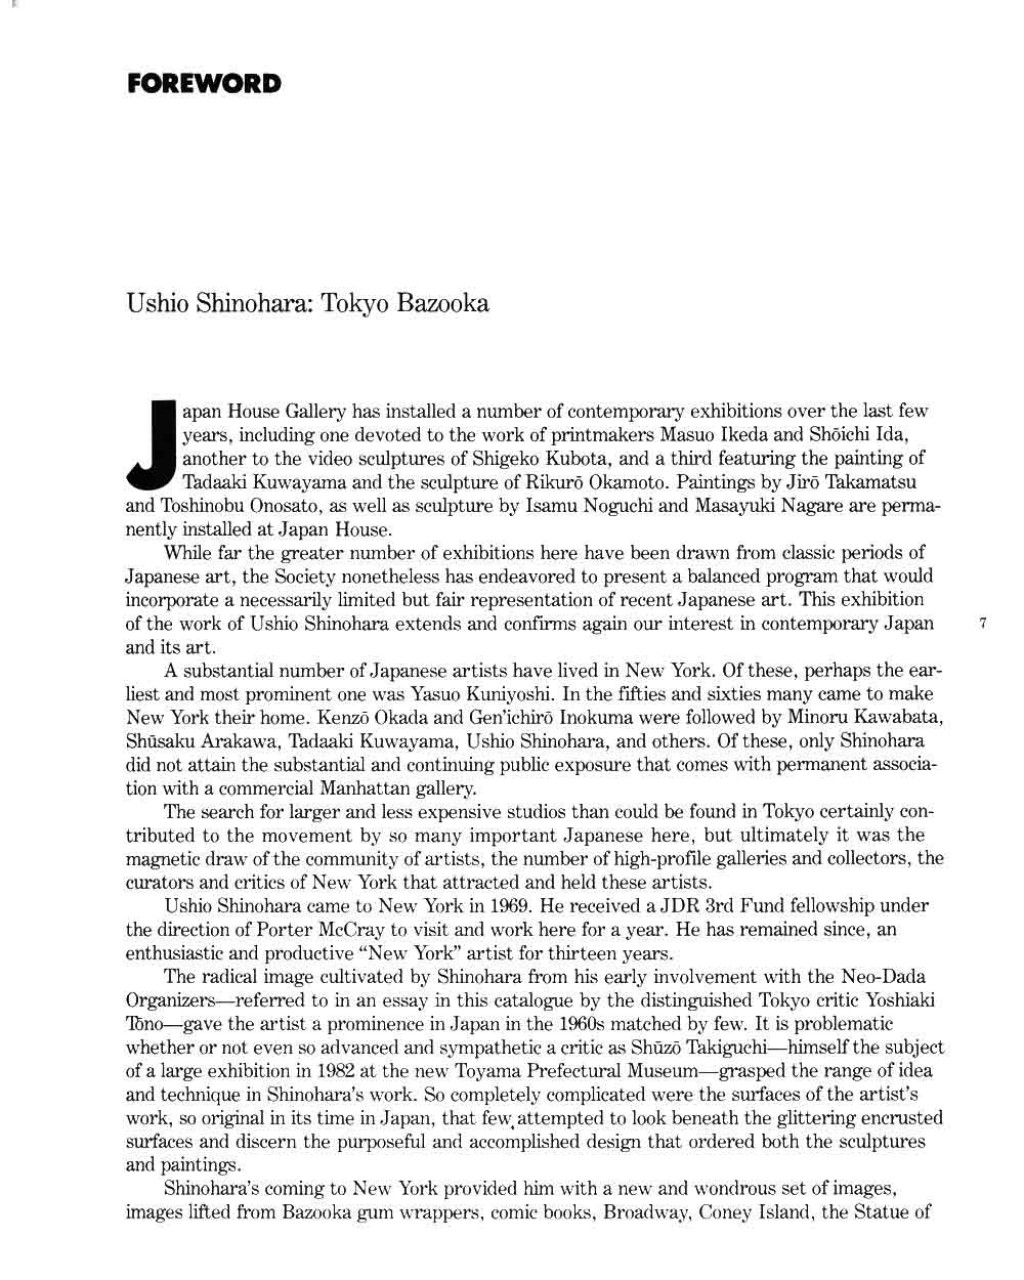 006 Ushio Shinohara Tokyo Bazooka Essay Pg 1 How To Cite Essays Fearsome A Conference Paper Mla 8 From Book Reference In Apa Format Large